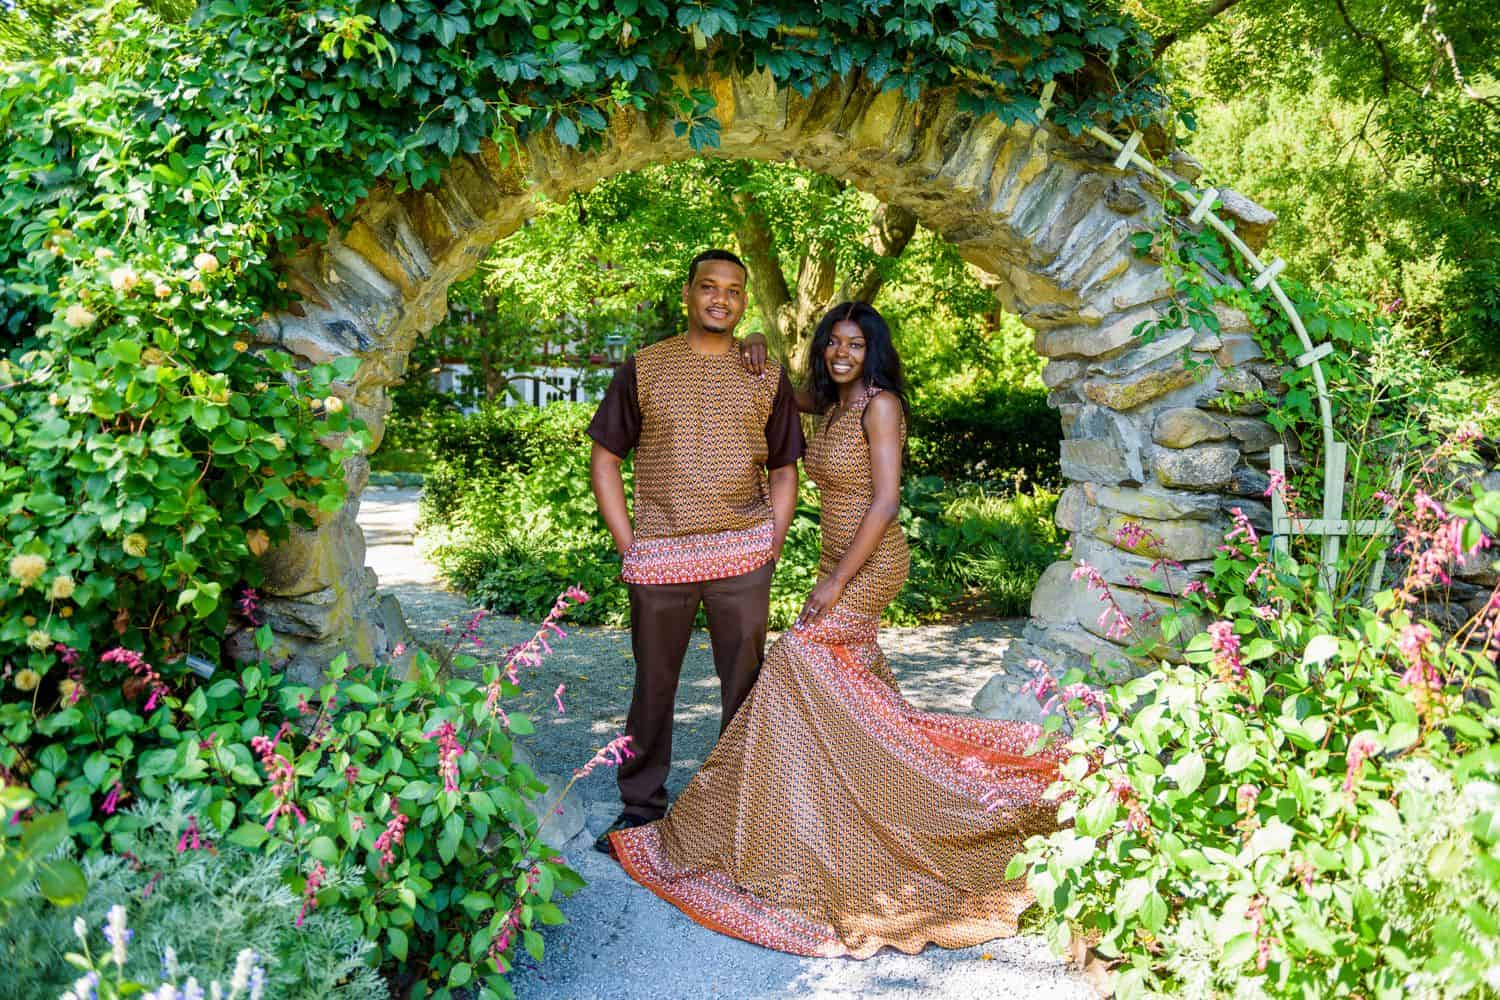 A Black couples poses in an ivy-covered archway wearing traditional African clothing